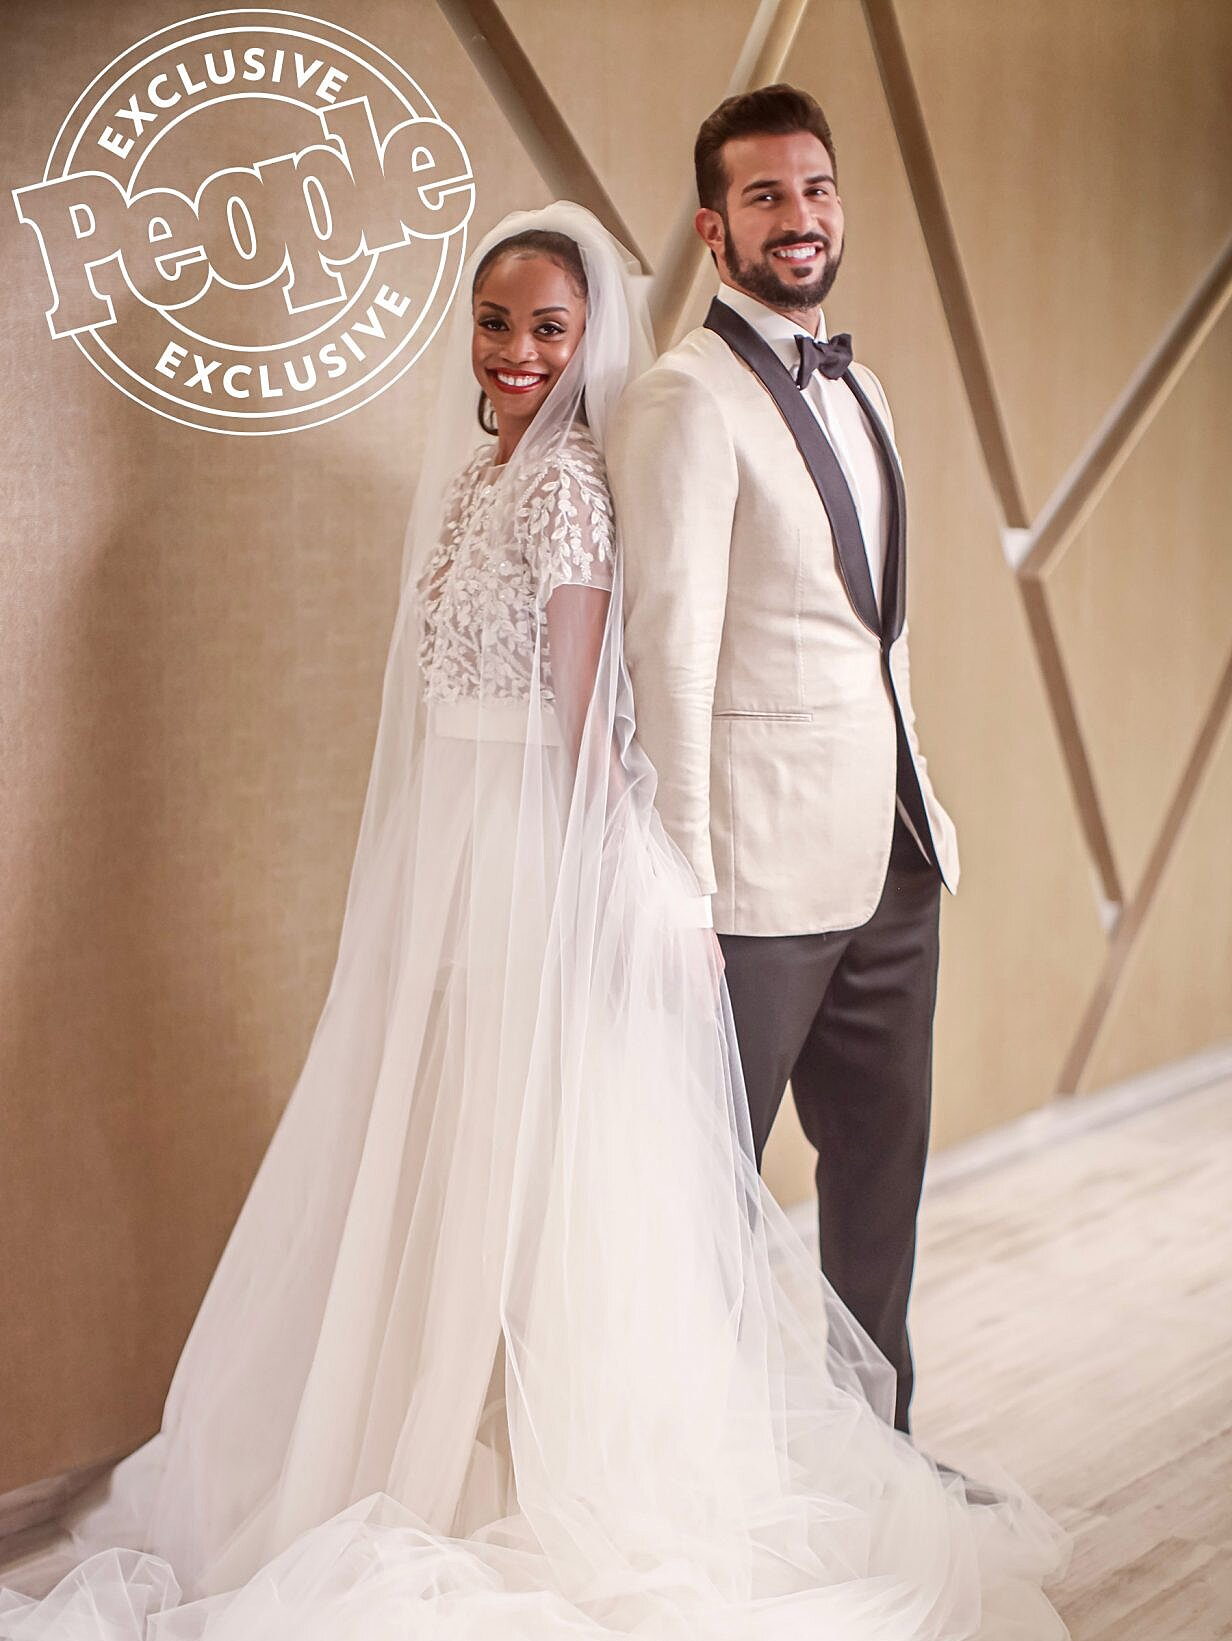 The Bachelorette Rachel Lindsay Marries Bryan Abasolo  PEOPLE.com